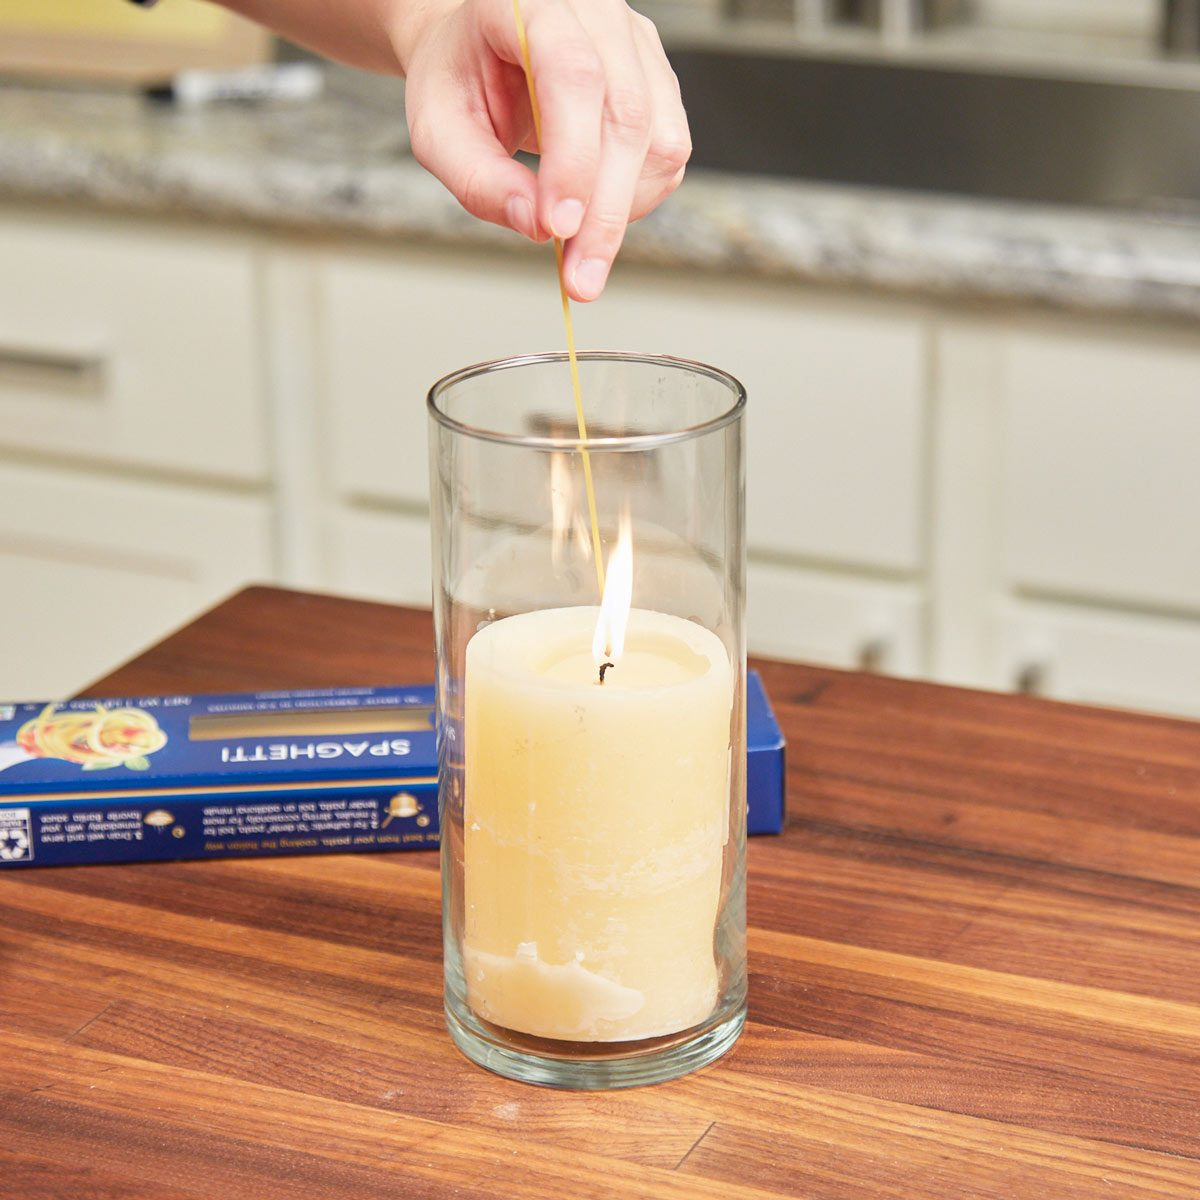 HH handy hints spaghetti noodle lighter candle